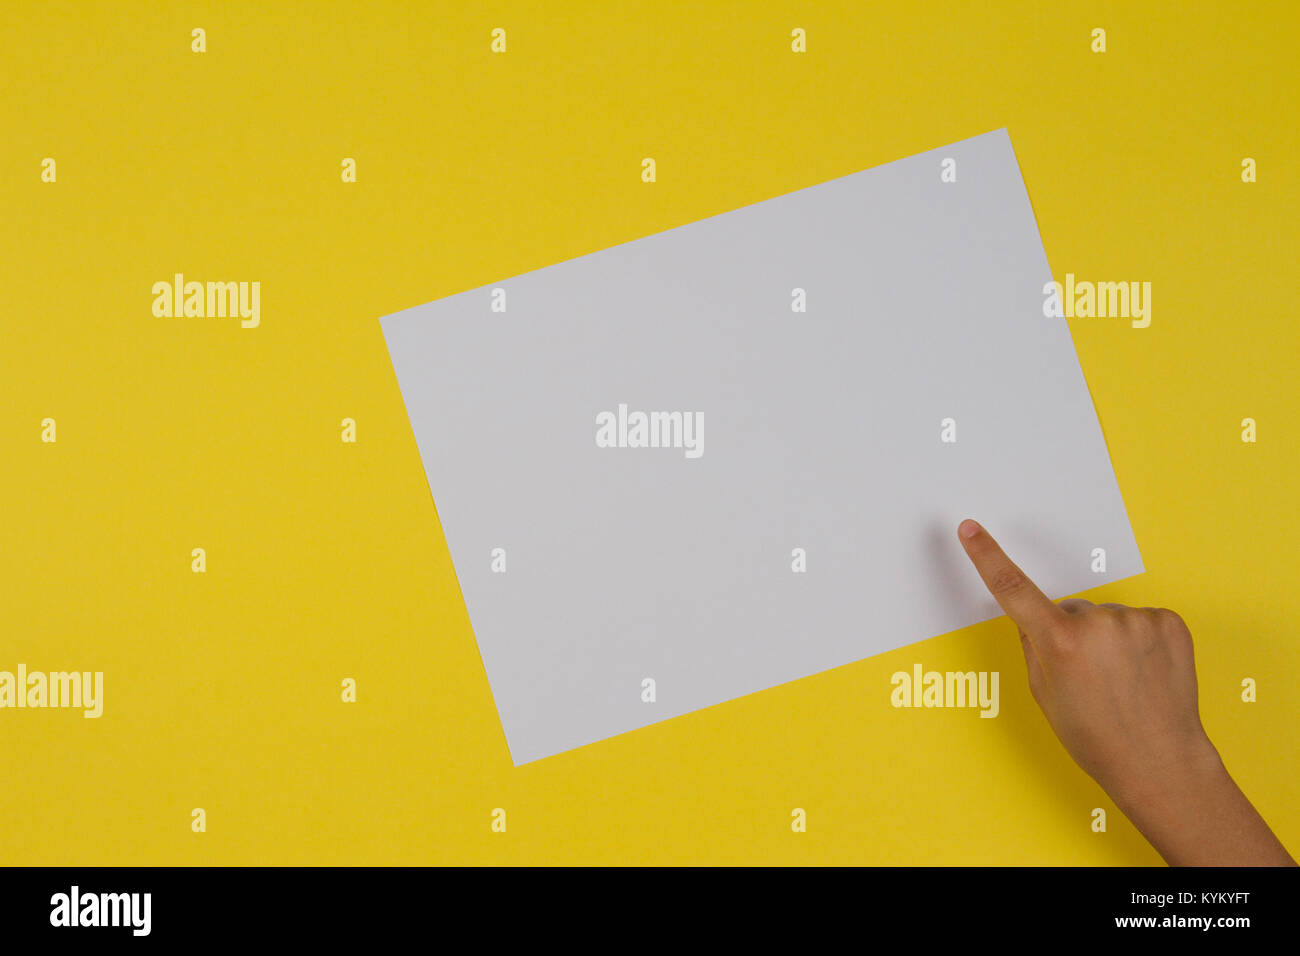 Kids hand finger pointing to white blank paper card on yellow background. - Stock Image